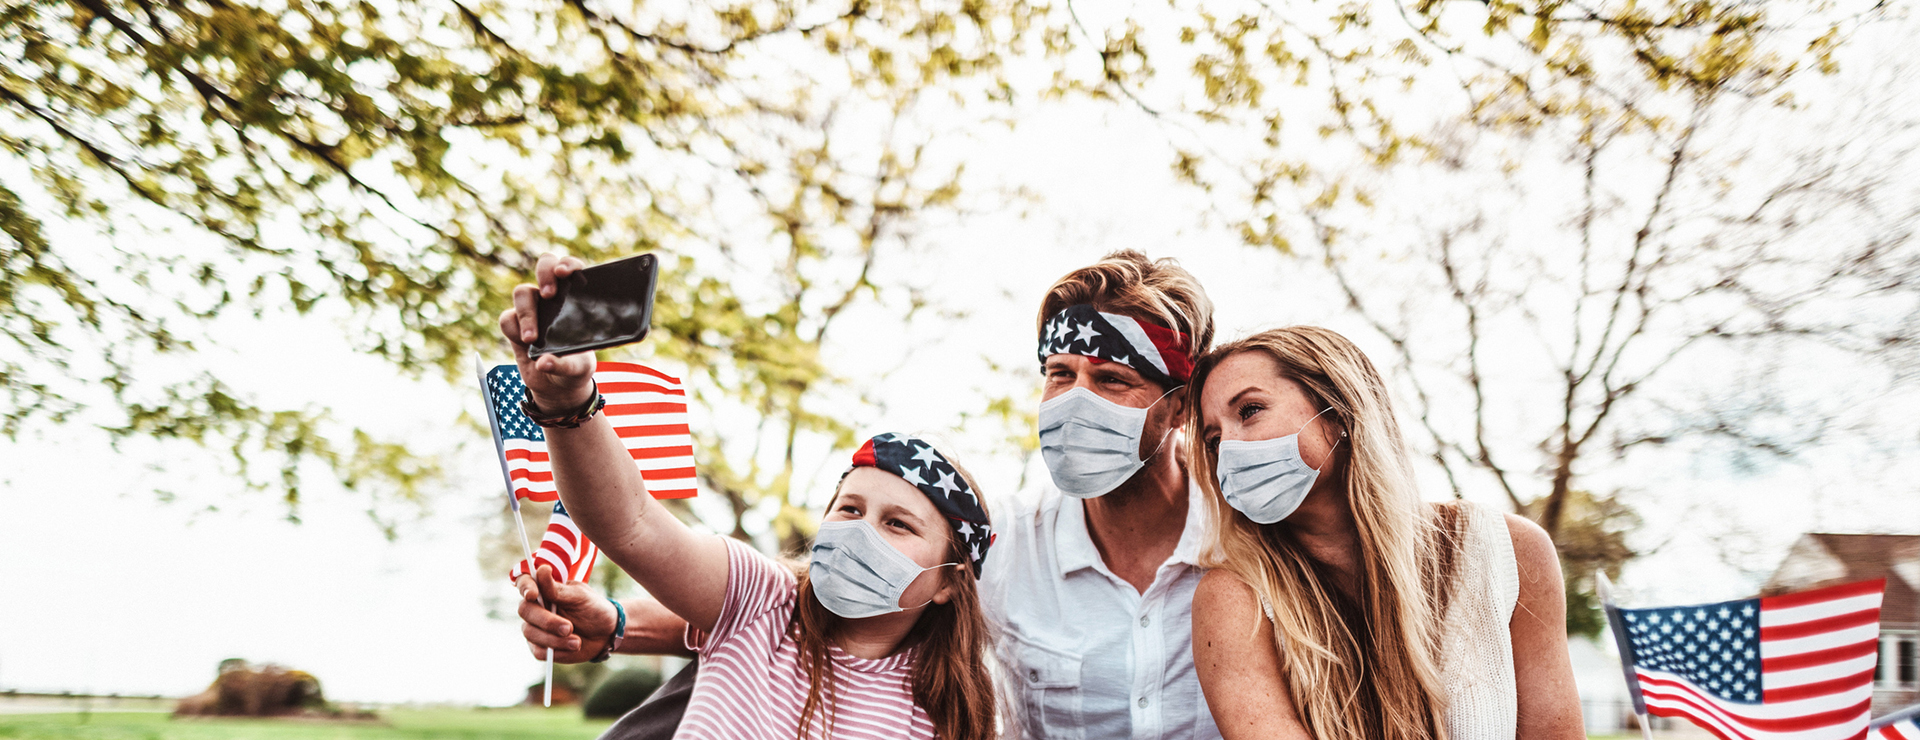 A family celebrating the 4th of July with masks on